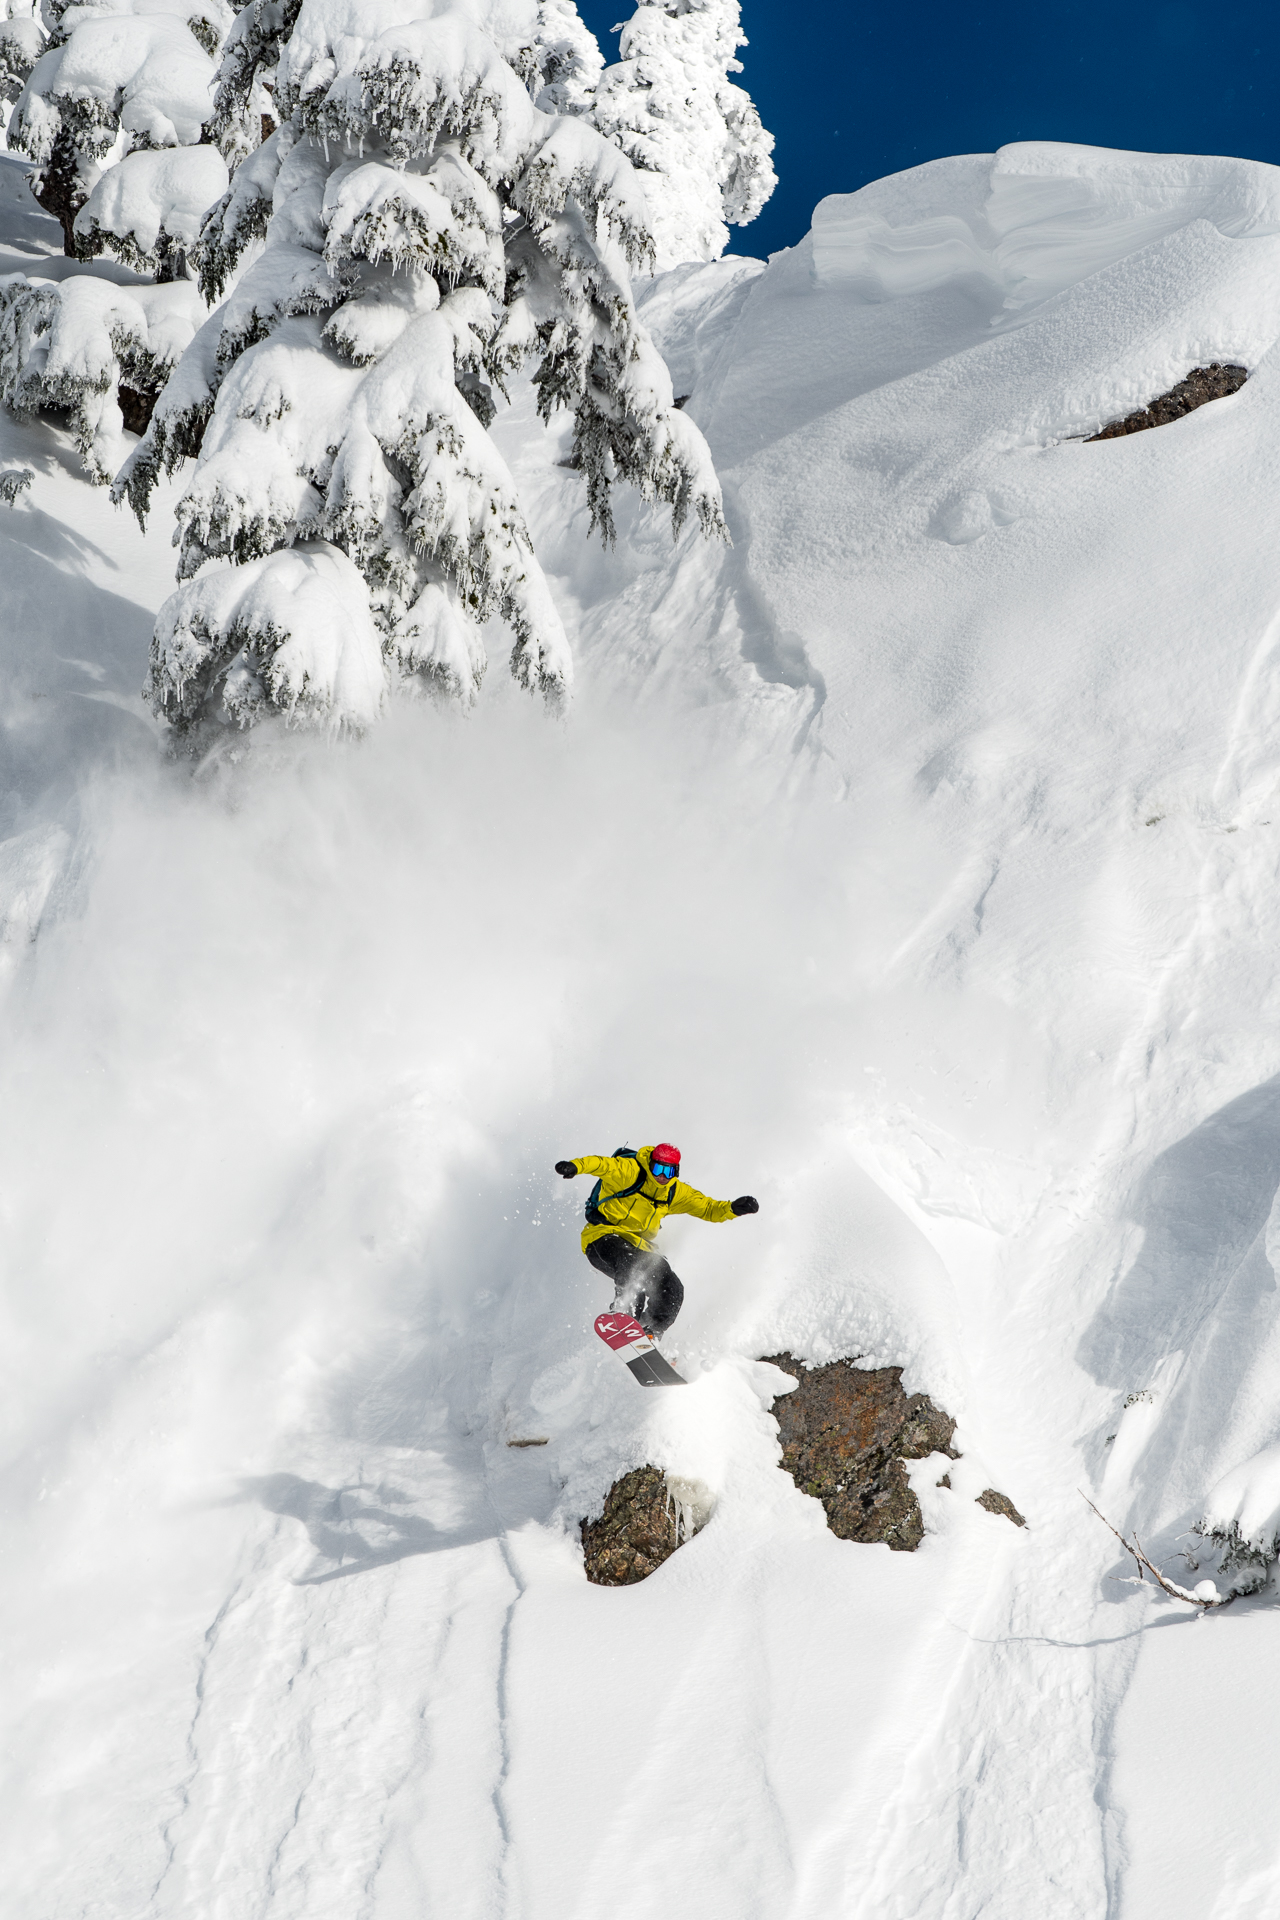 Kael Martin, Mt Baker backcountry, WA. Photo: Colin Wiseman.